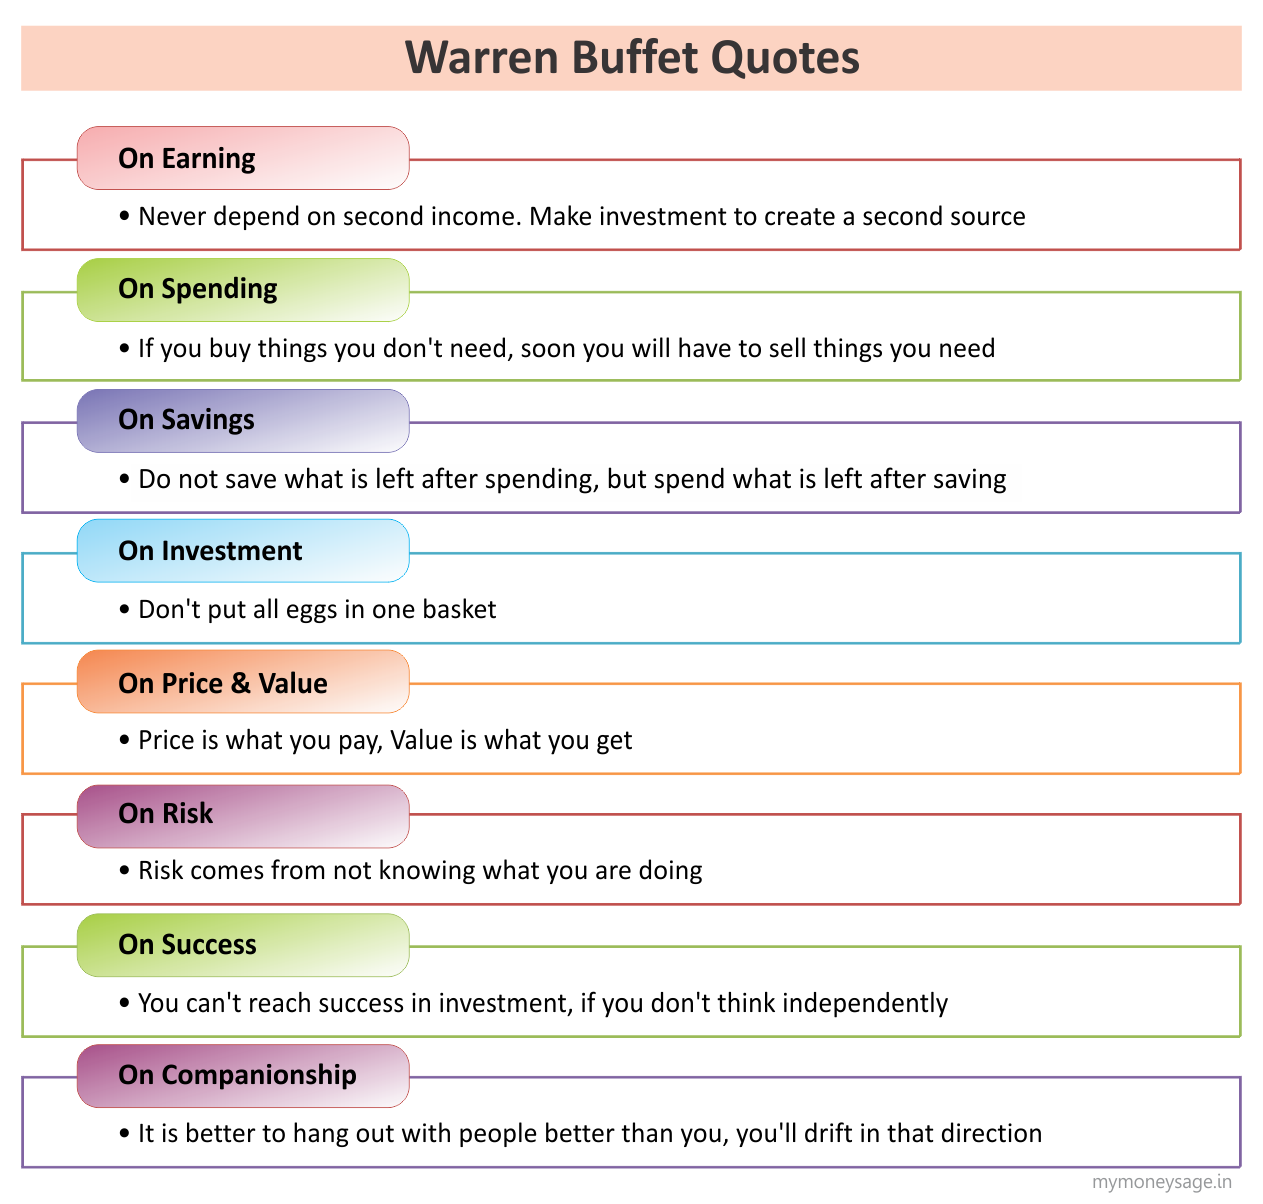 Quotes from Warren Buffet